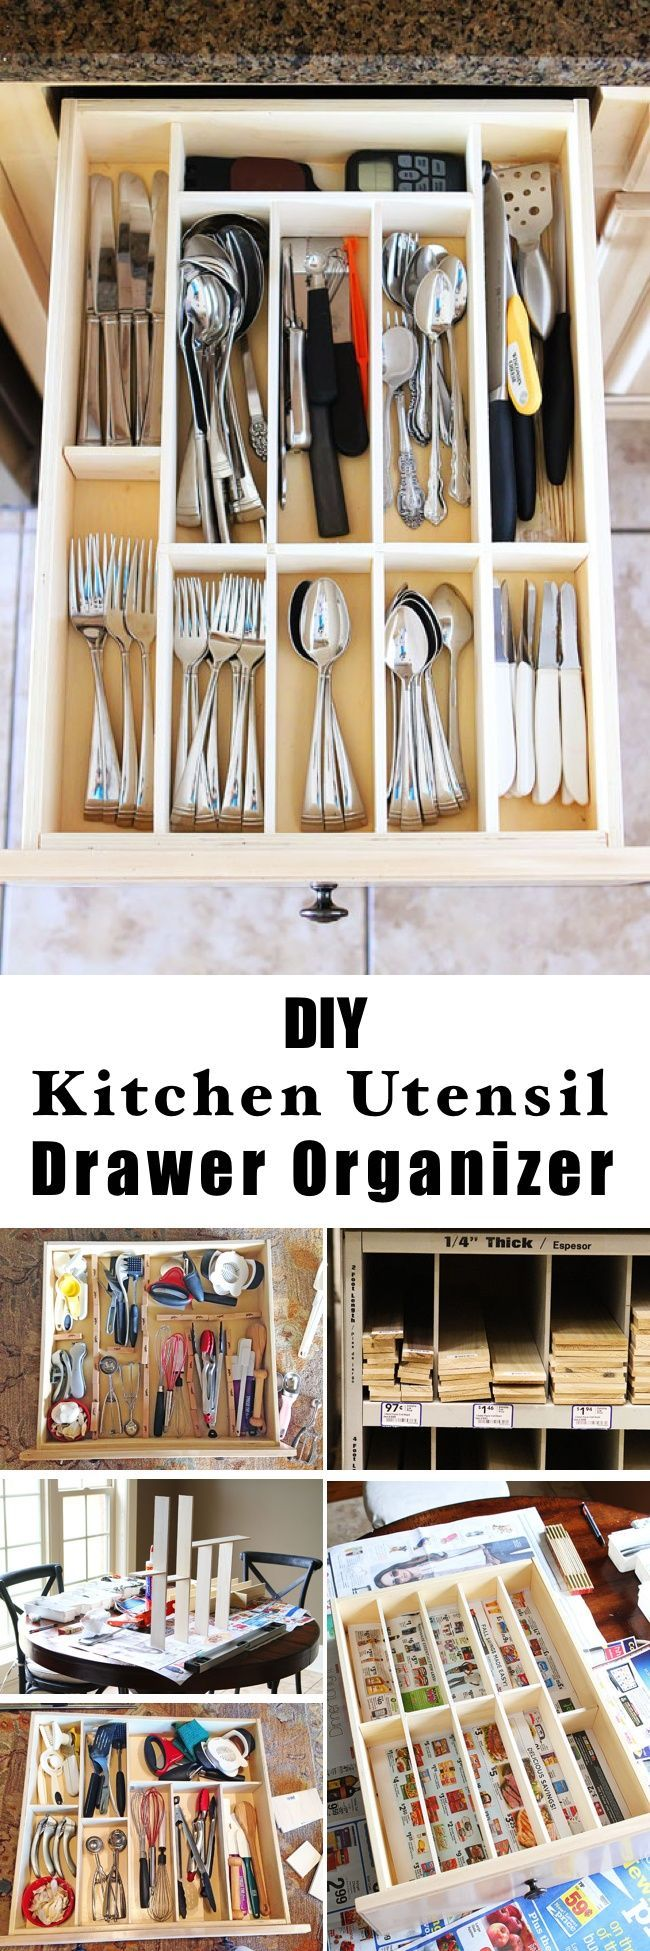 15 innovative diy kitchen organization storage ideas diy projects pinterest k che. Black Bedroom Furniture Sets. Home Design Ideas